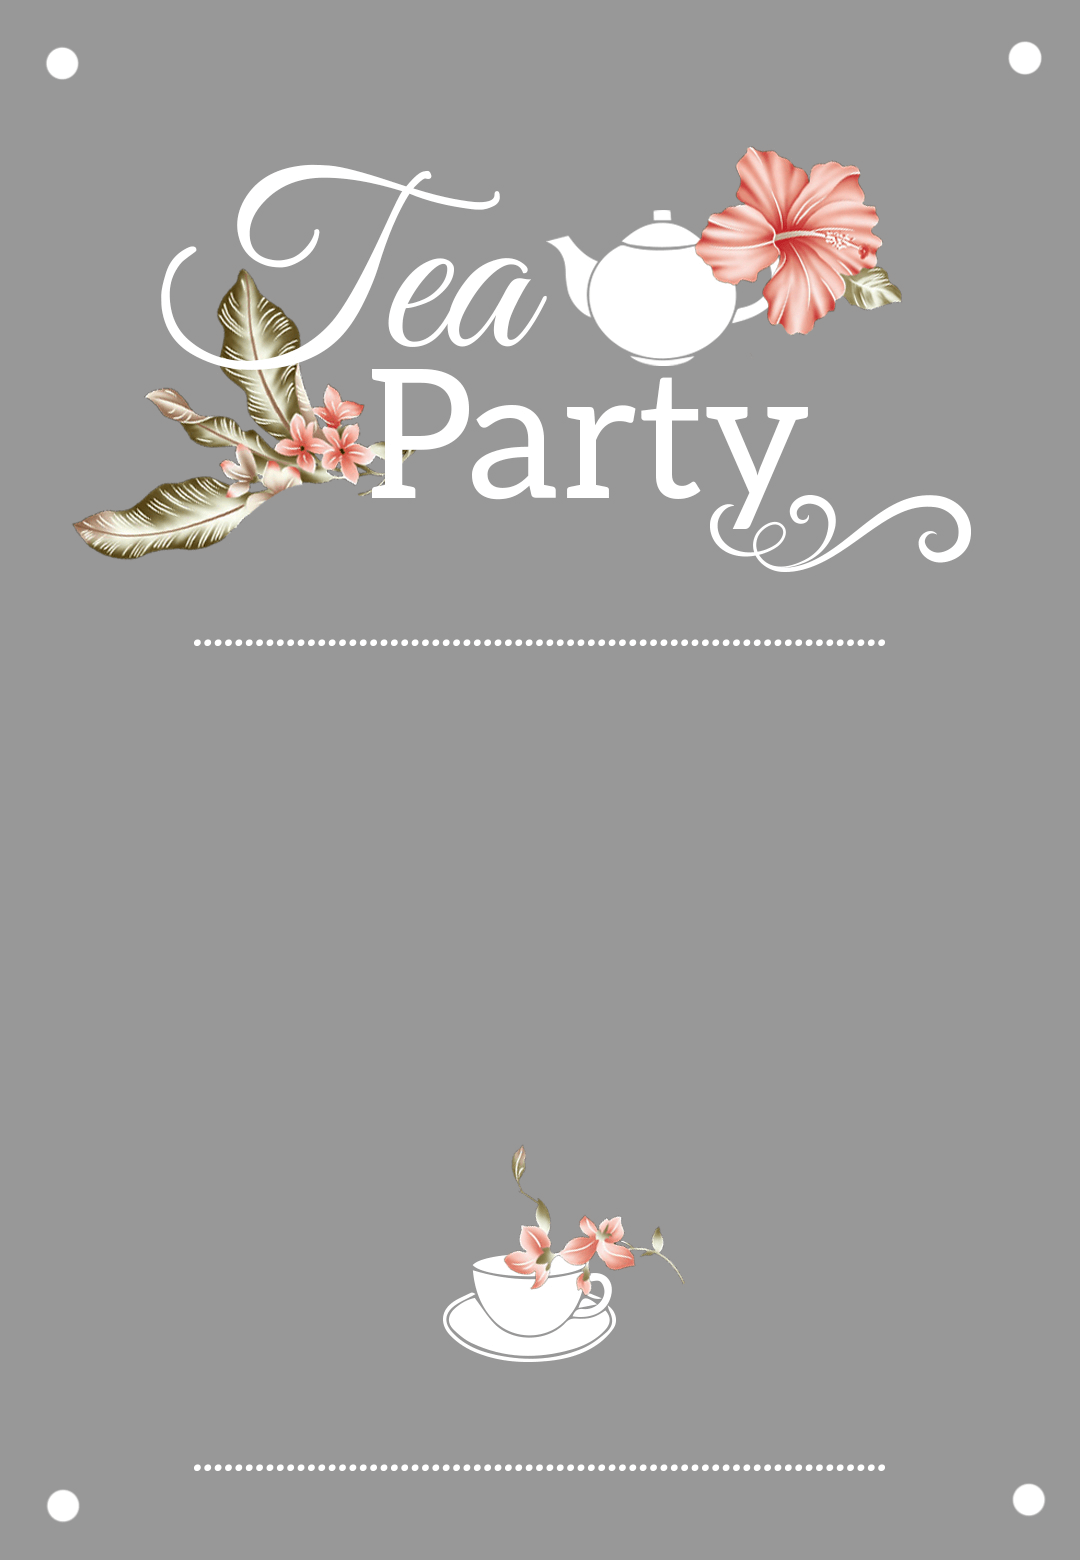 Bridal Shower Tea Party Free Printable